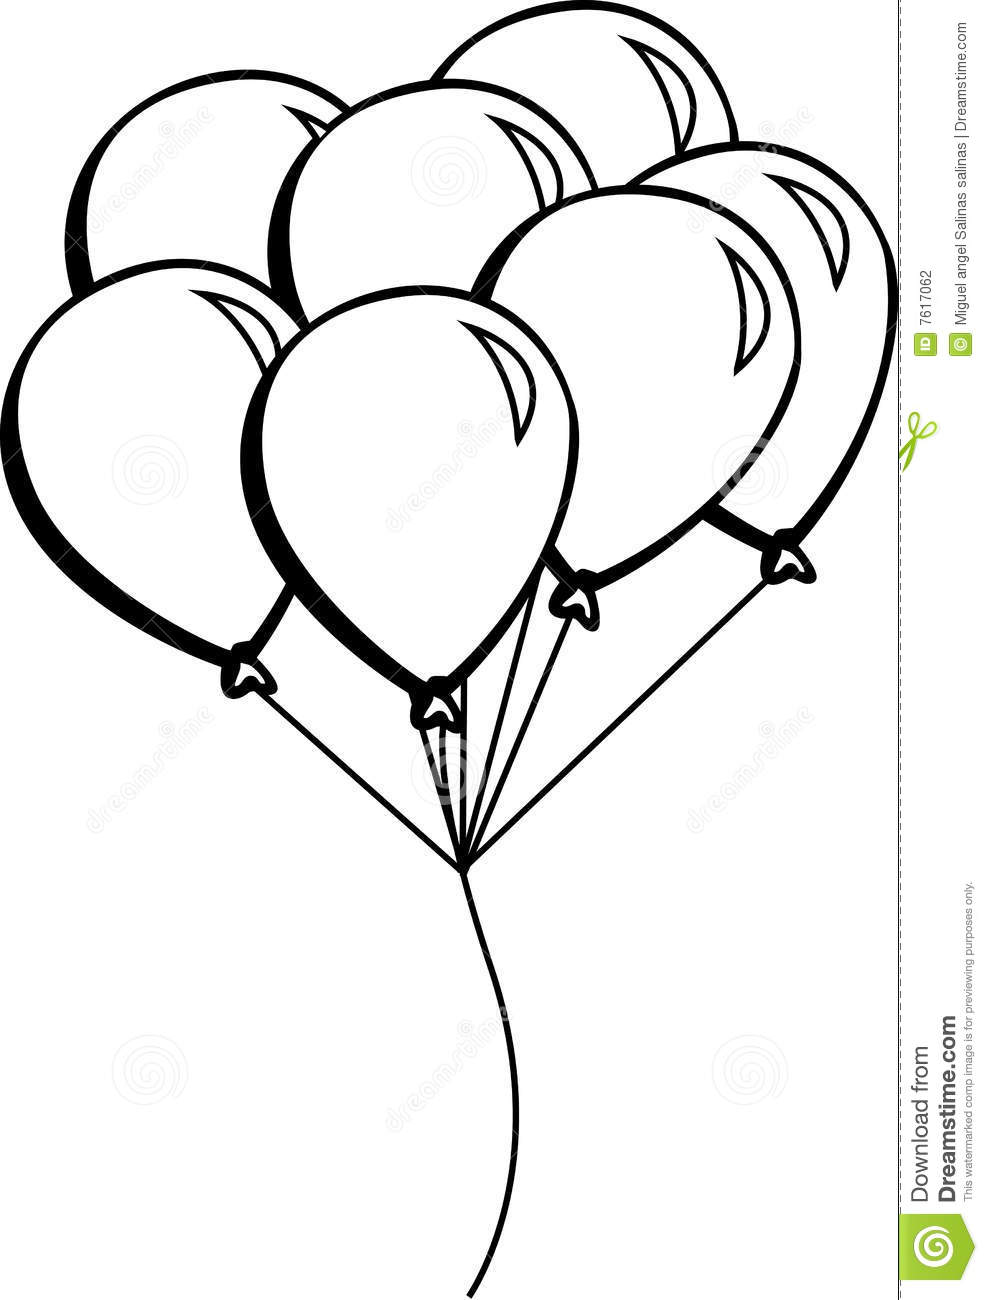 Tiara Clip Art Image 19916 also Graffiti Characters Gas Mask Drawings further Frozens Olaf Coloring Pages besides Moose Coloring Pages also Hello Kitty Coloring Pages. on cute cartoon happy birthday